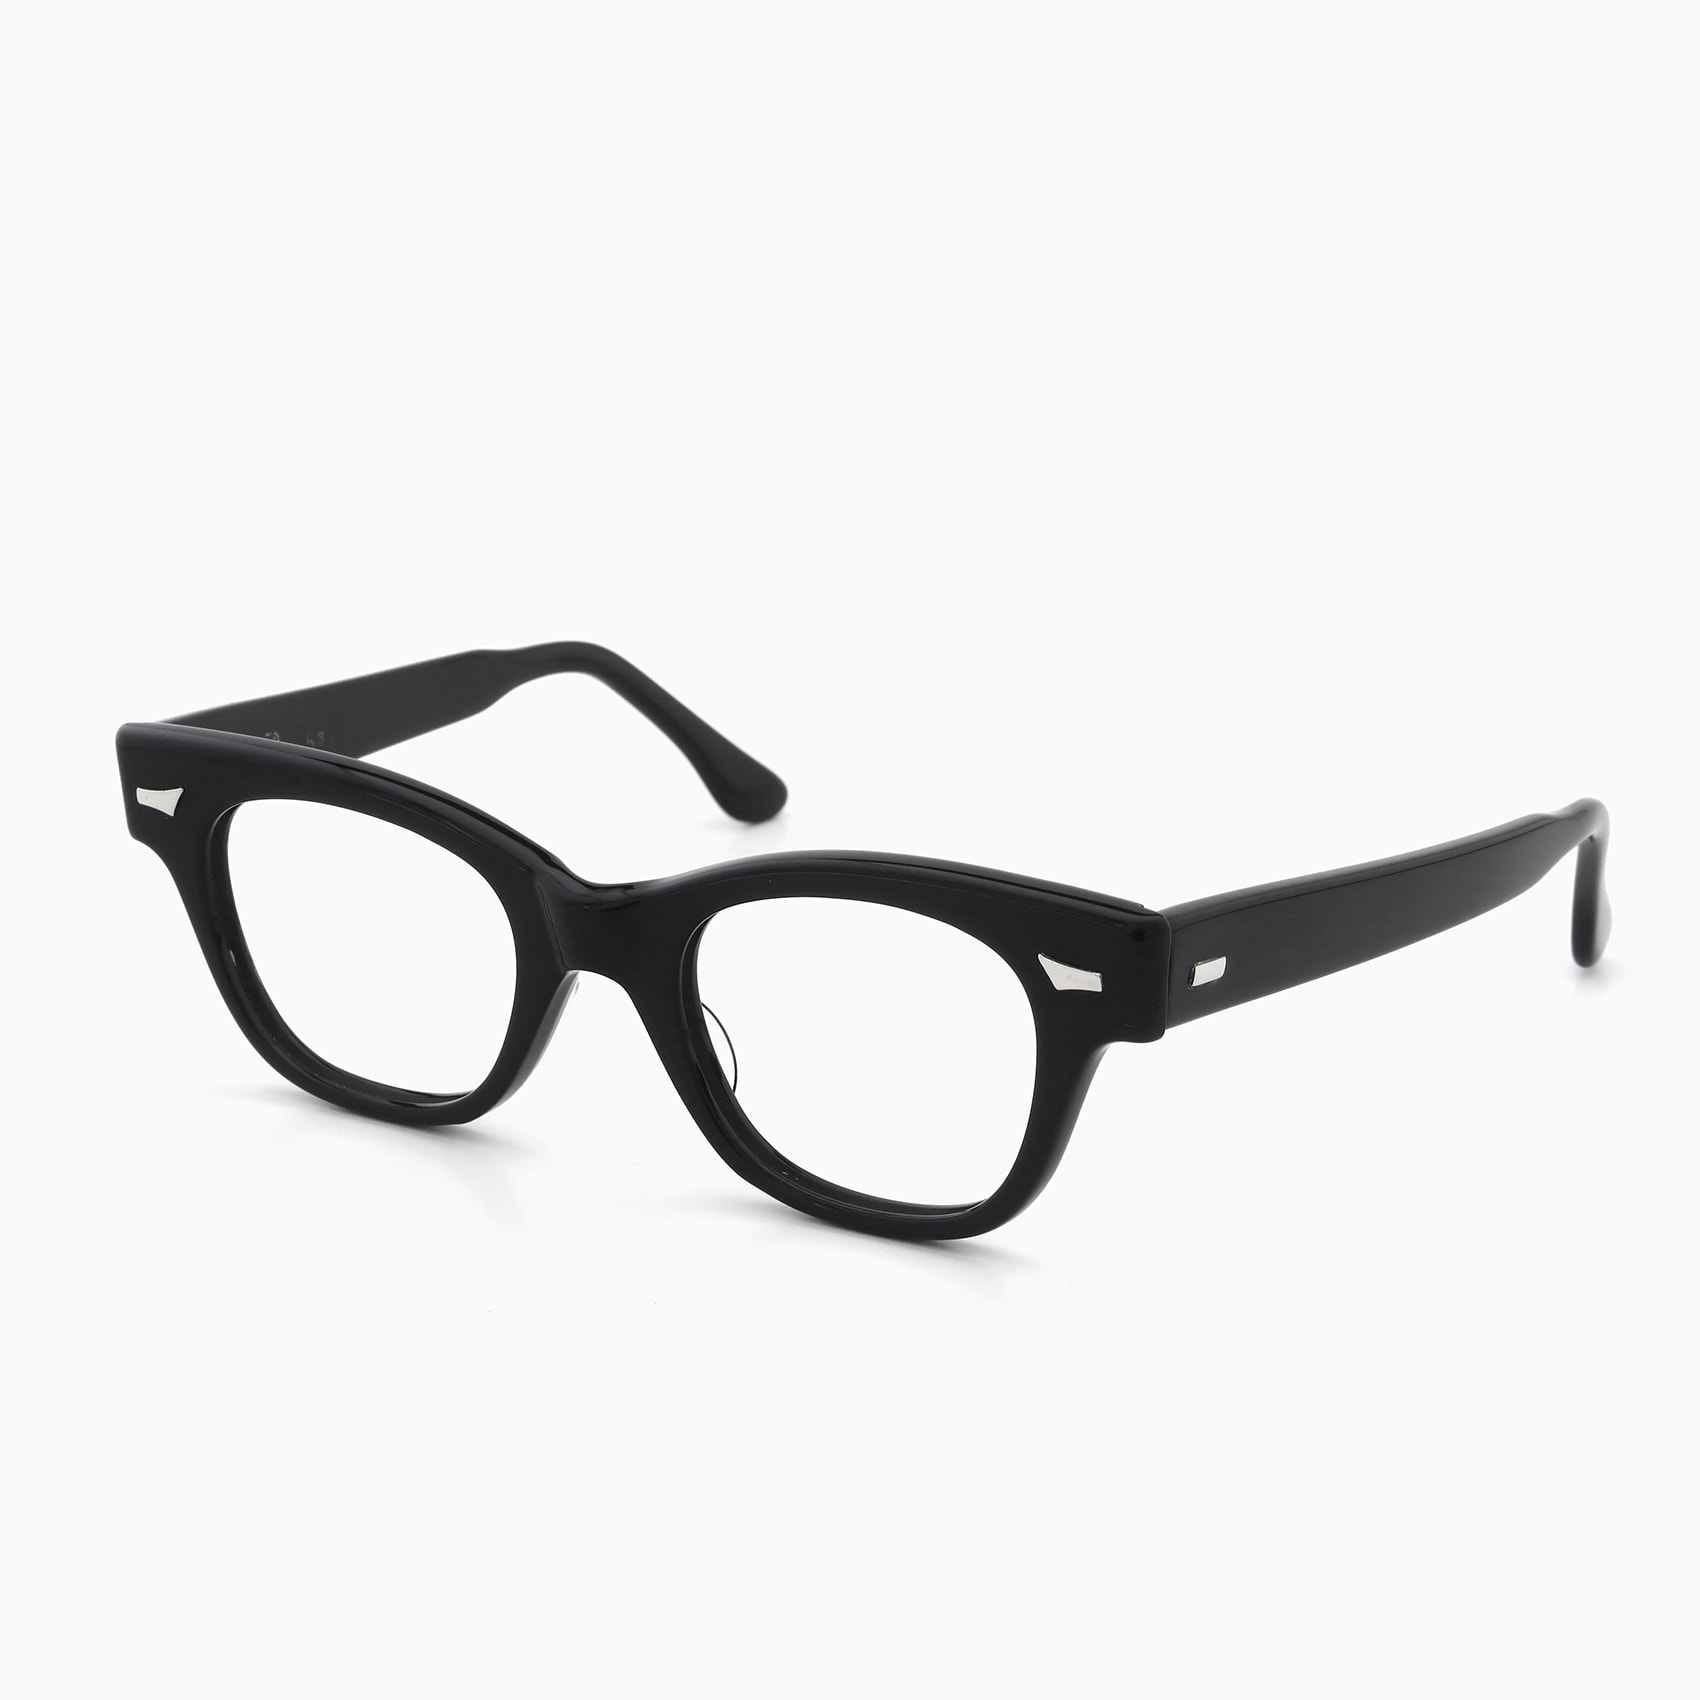 Tart-OPTICAL-vintage_COUNTDOWN_BLACK_AX_44-20_V2_4